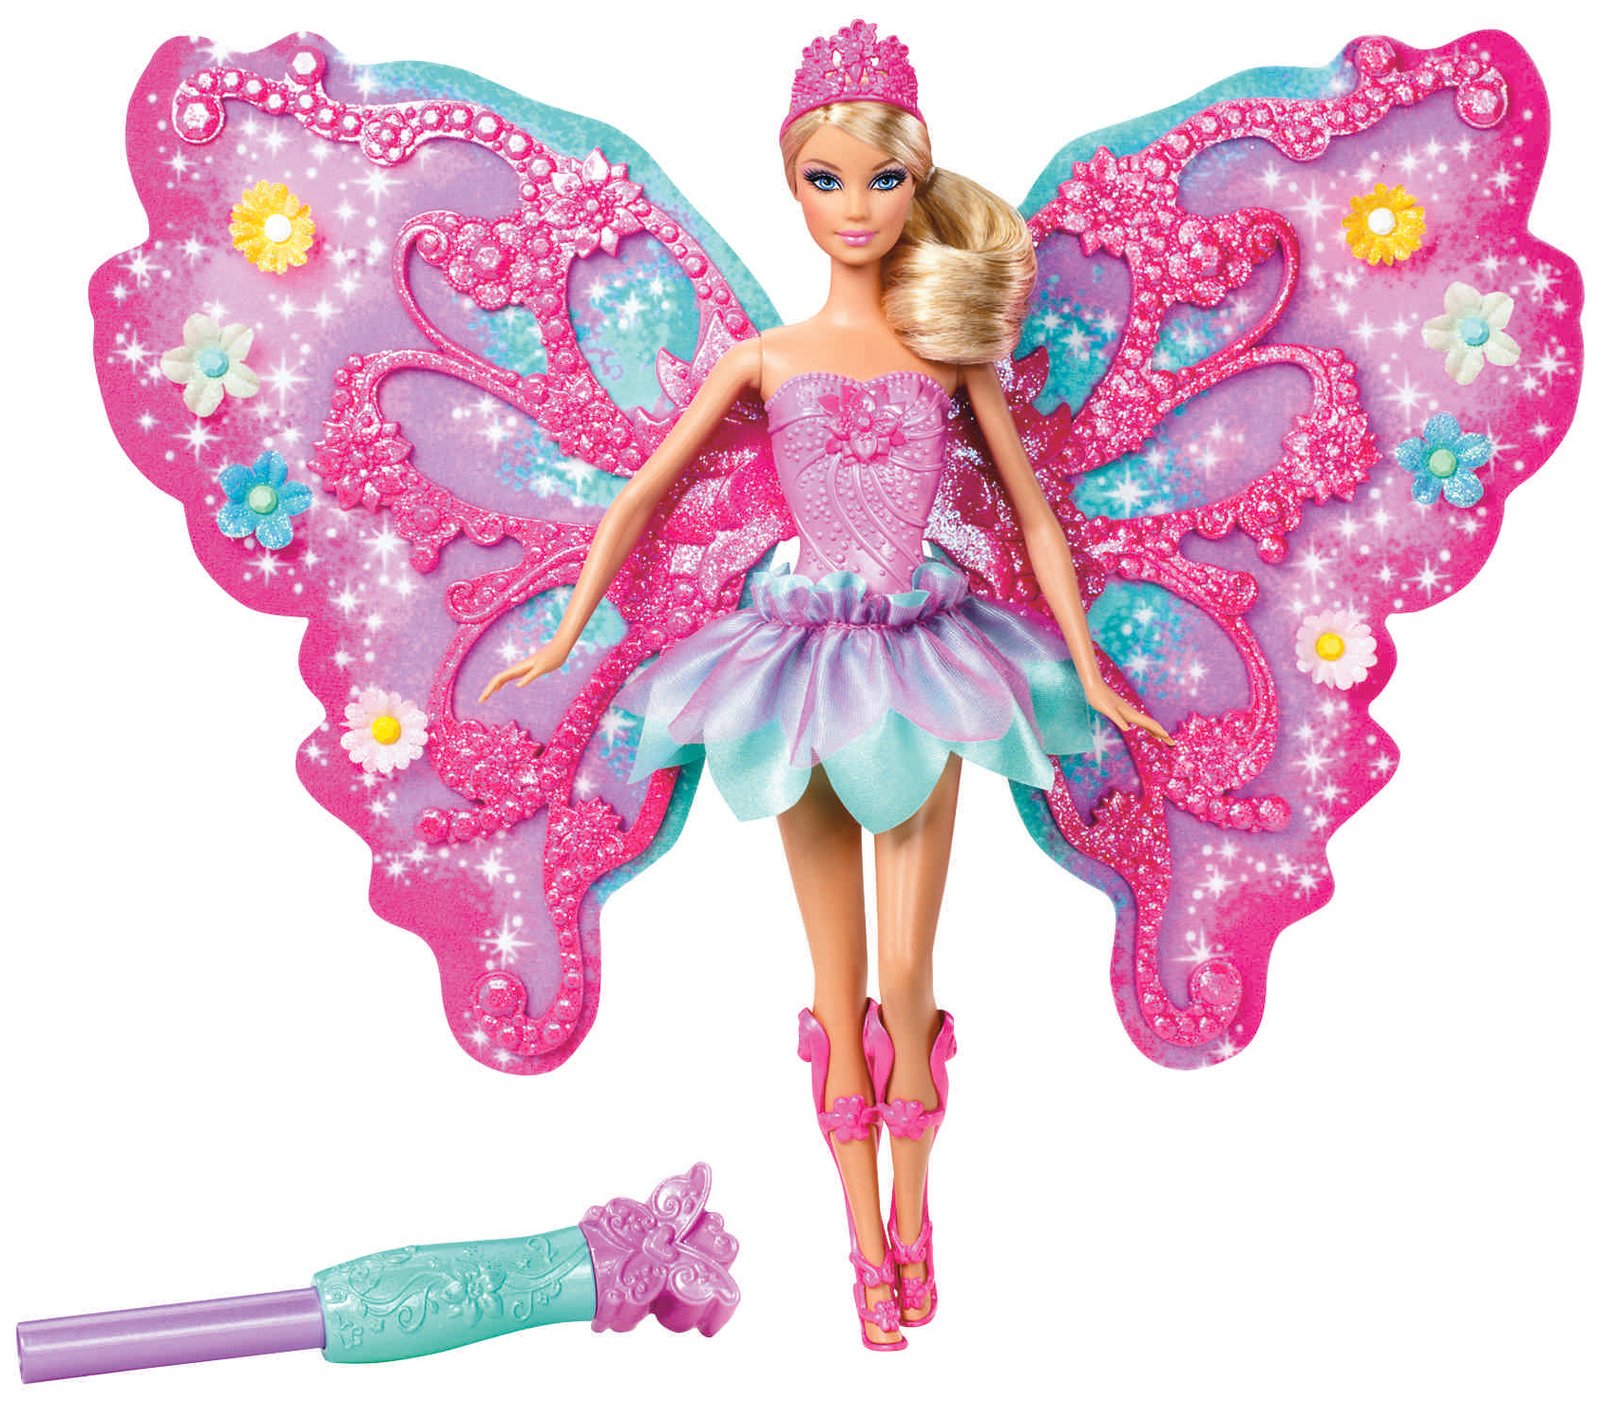 Barbie Images Cutes And Beautiful Kumpulan Gambar Lengkap